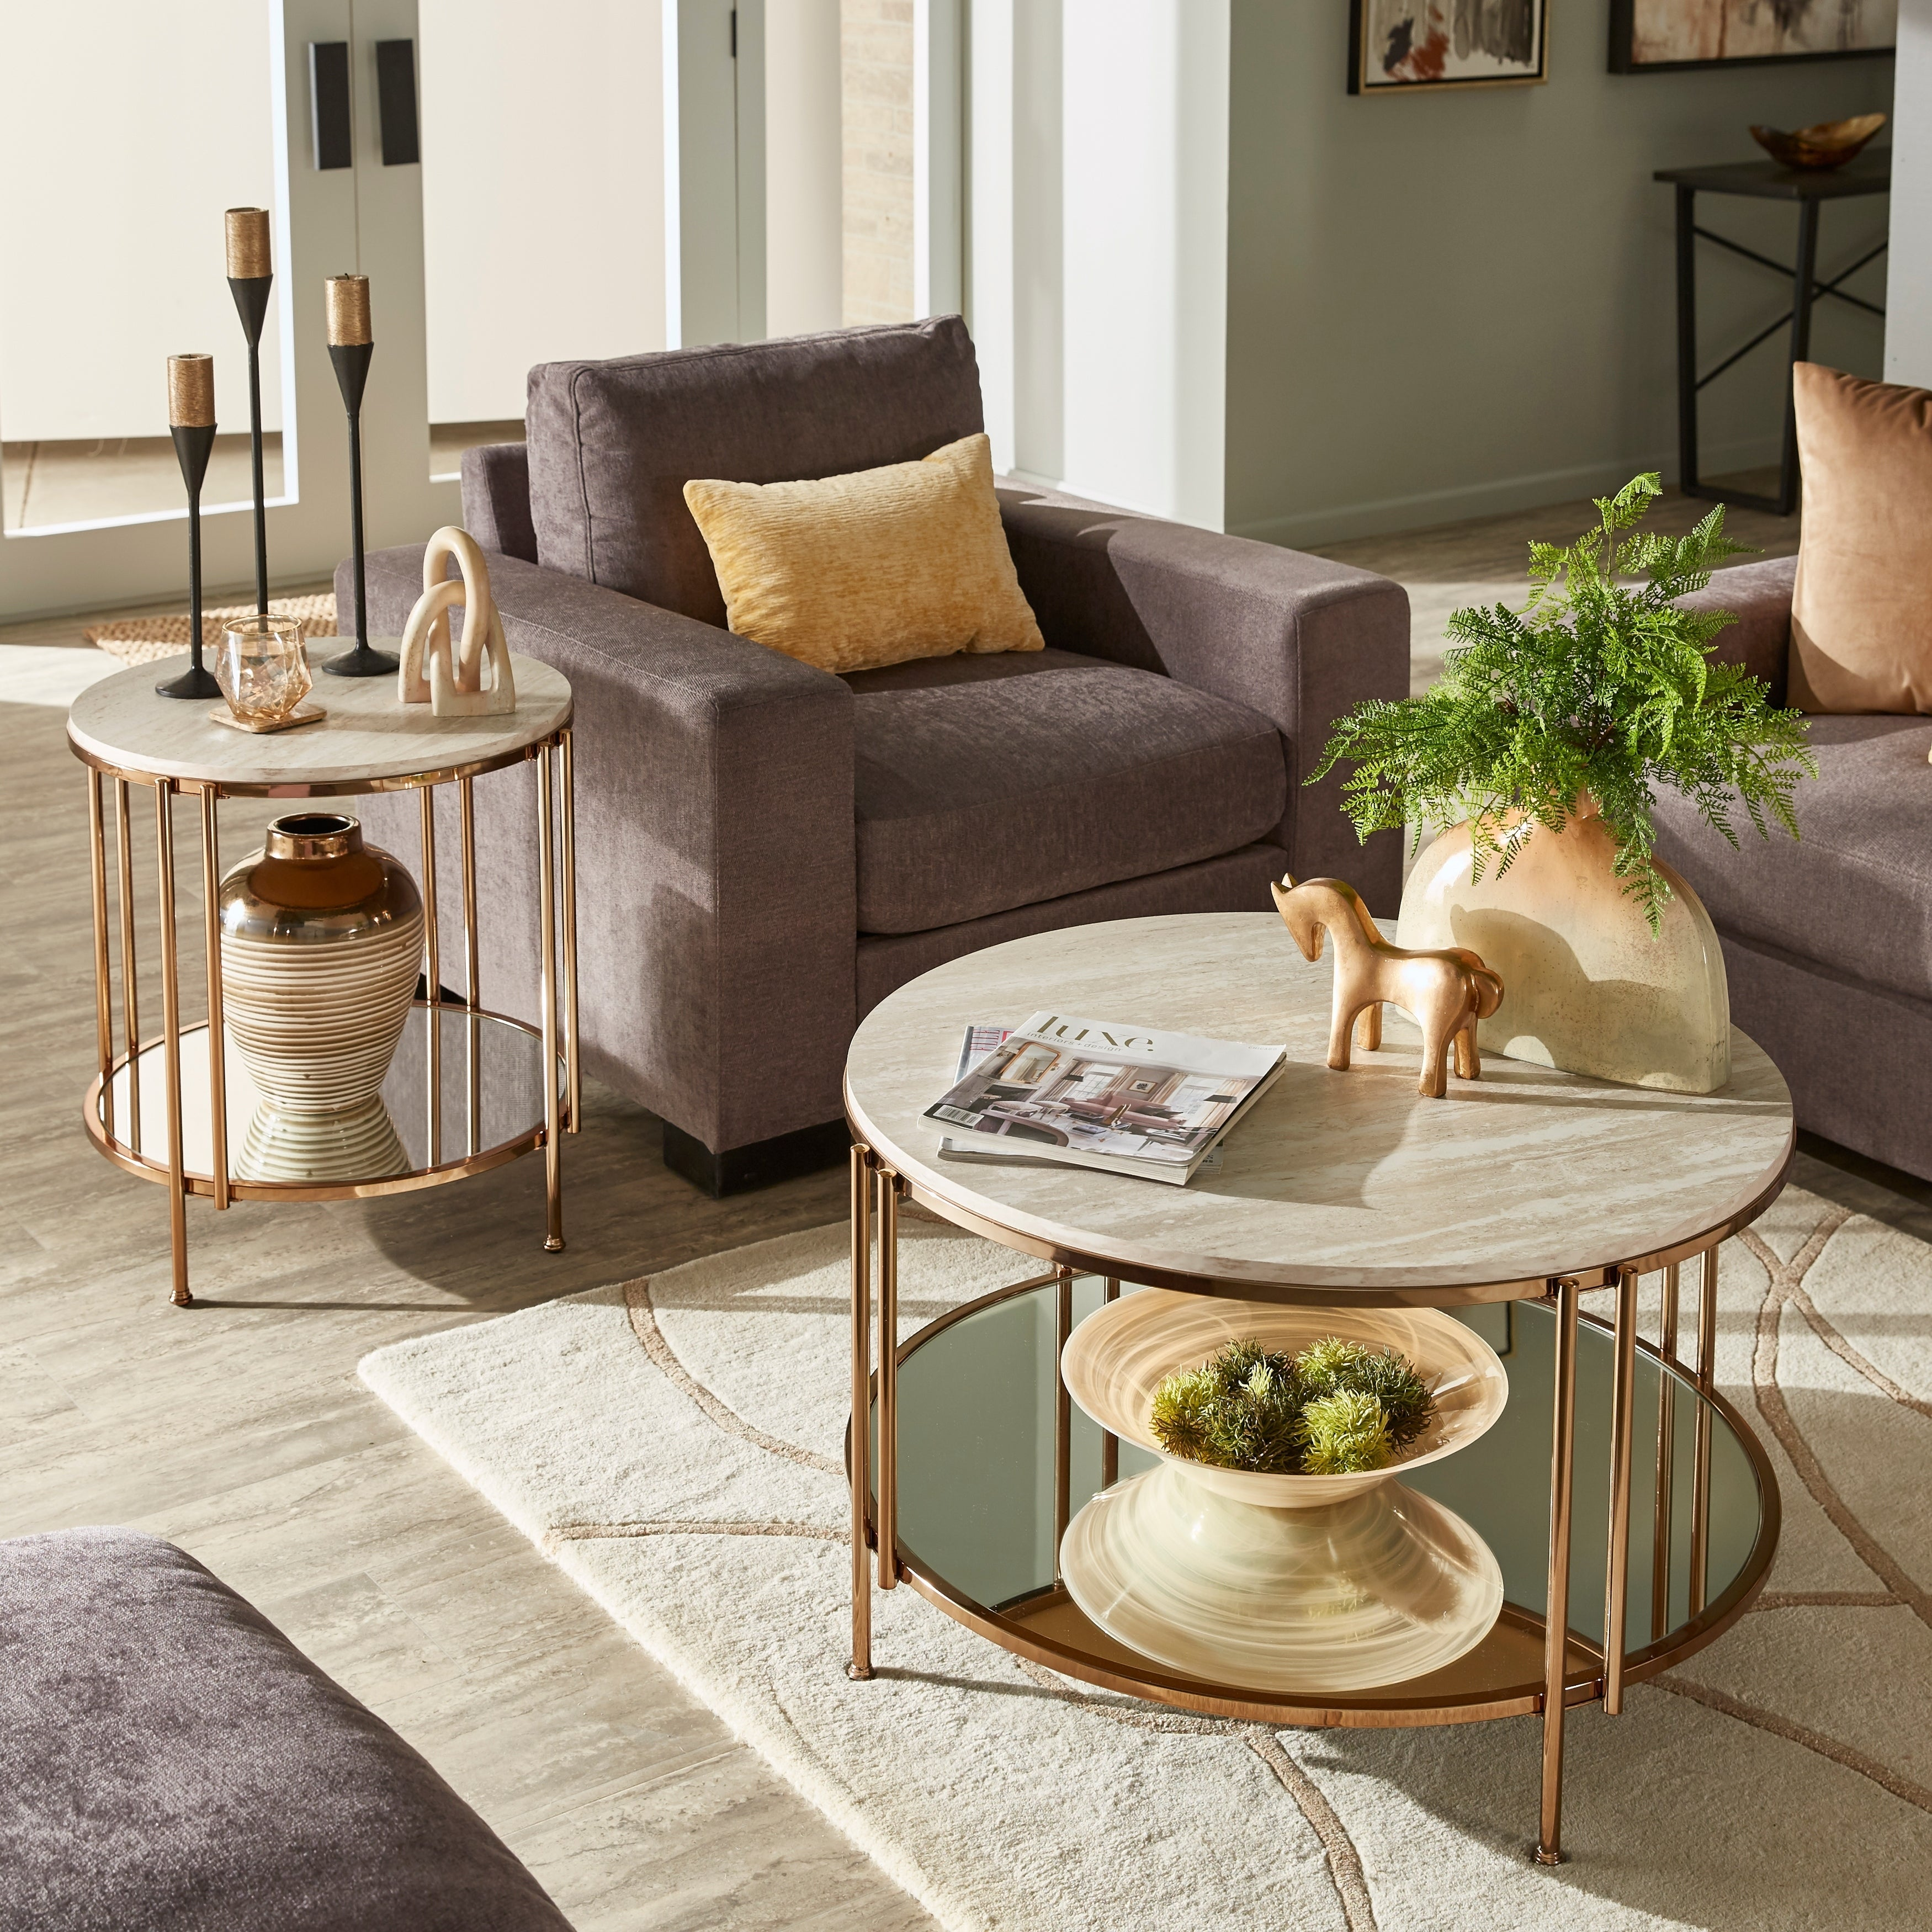 Celsus Champagne Gold Table Set With Faux Marble By Inspire Q Bold On Sale Overstock 27883704